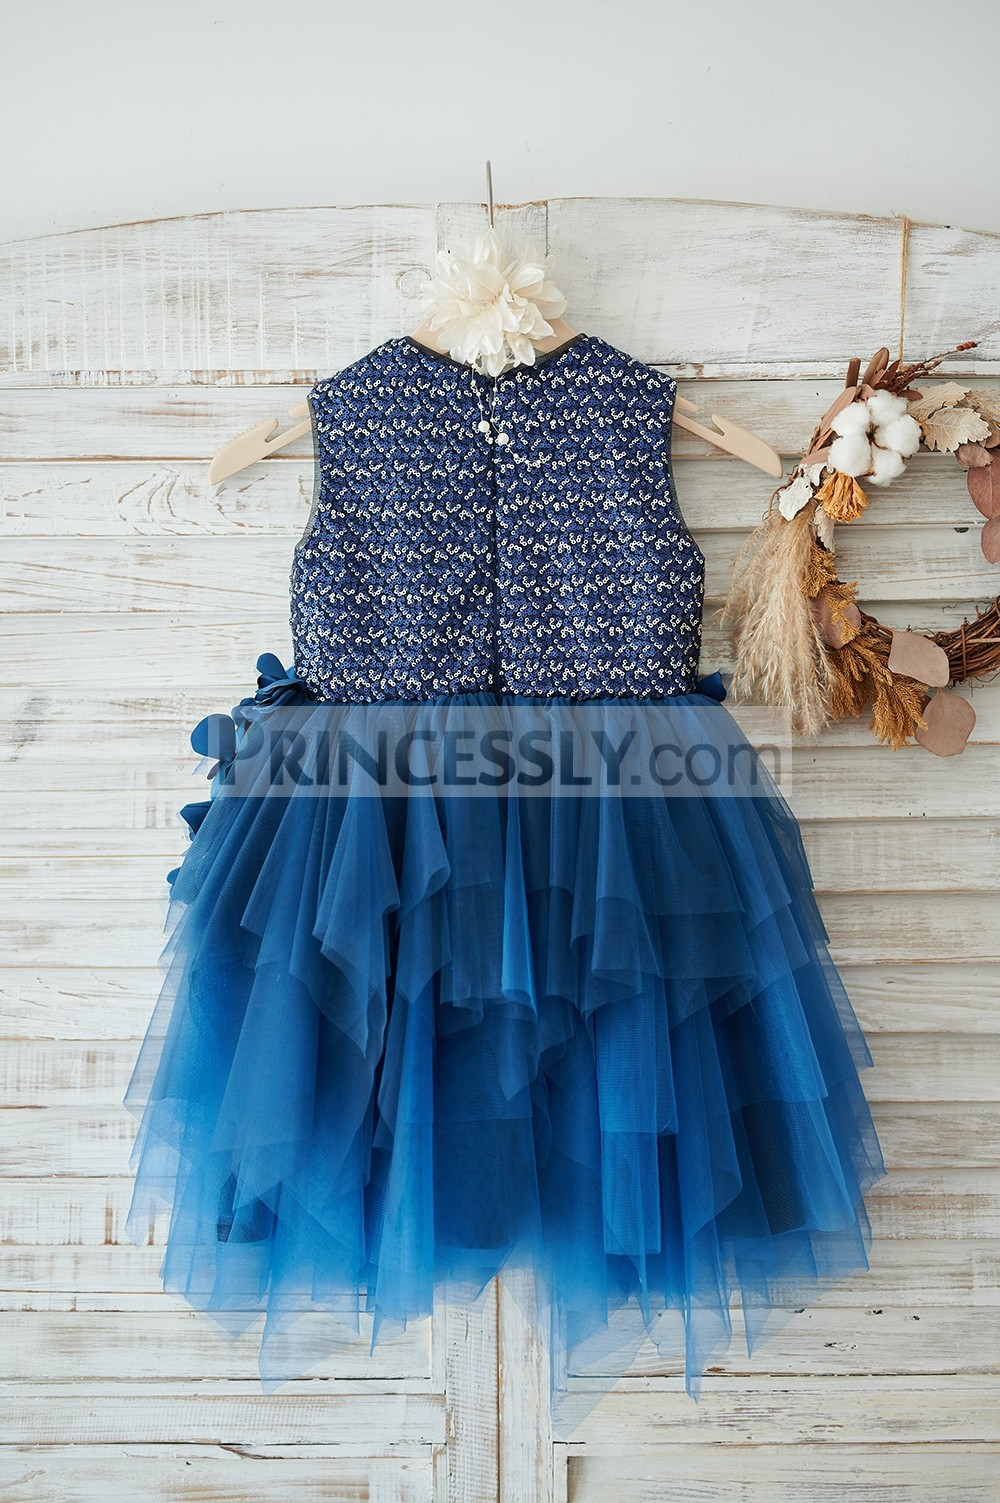 Navy blue tulle uneven skirt  wedding baby girl dress